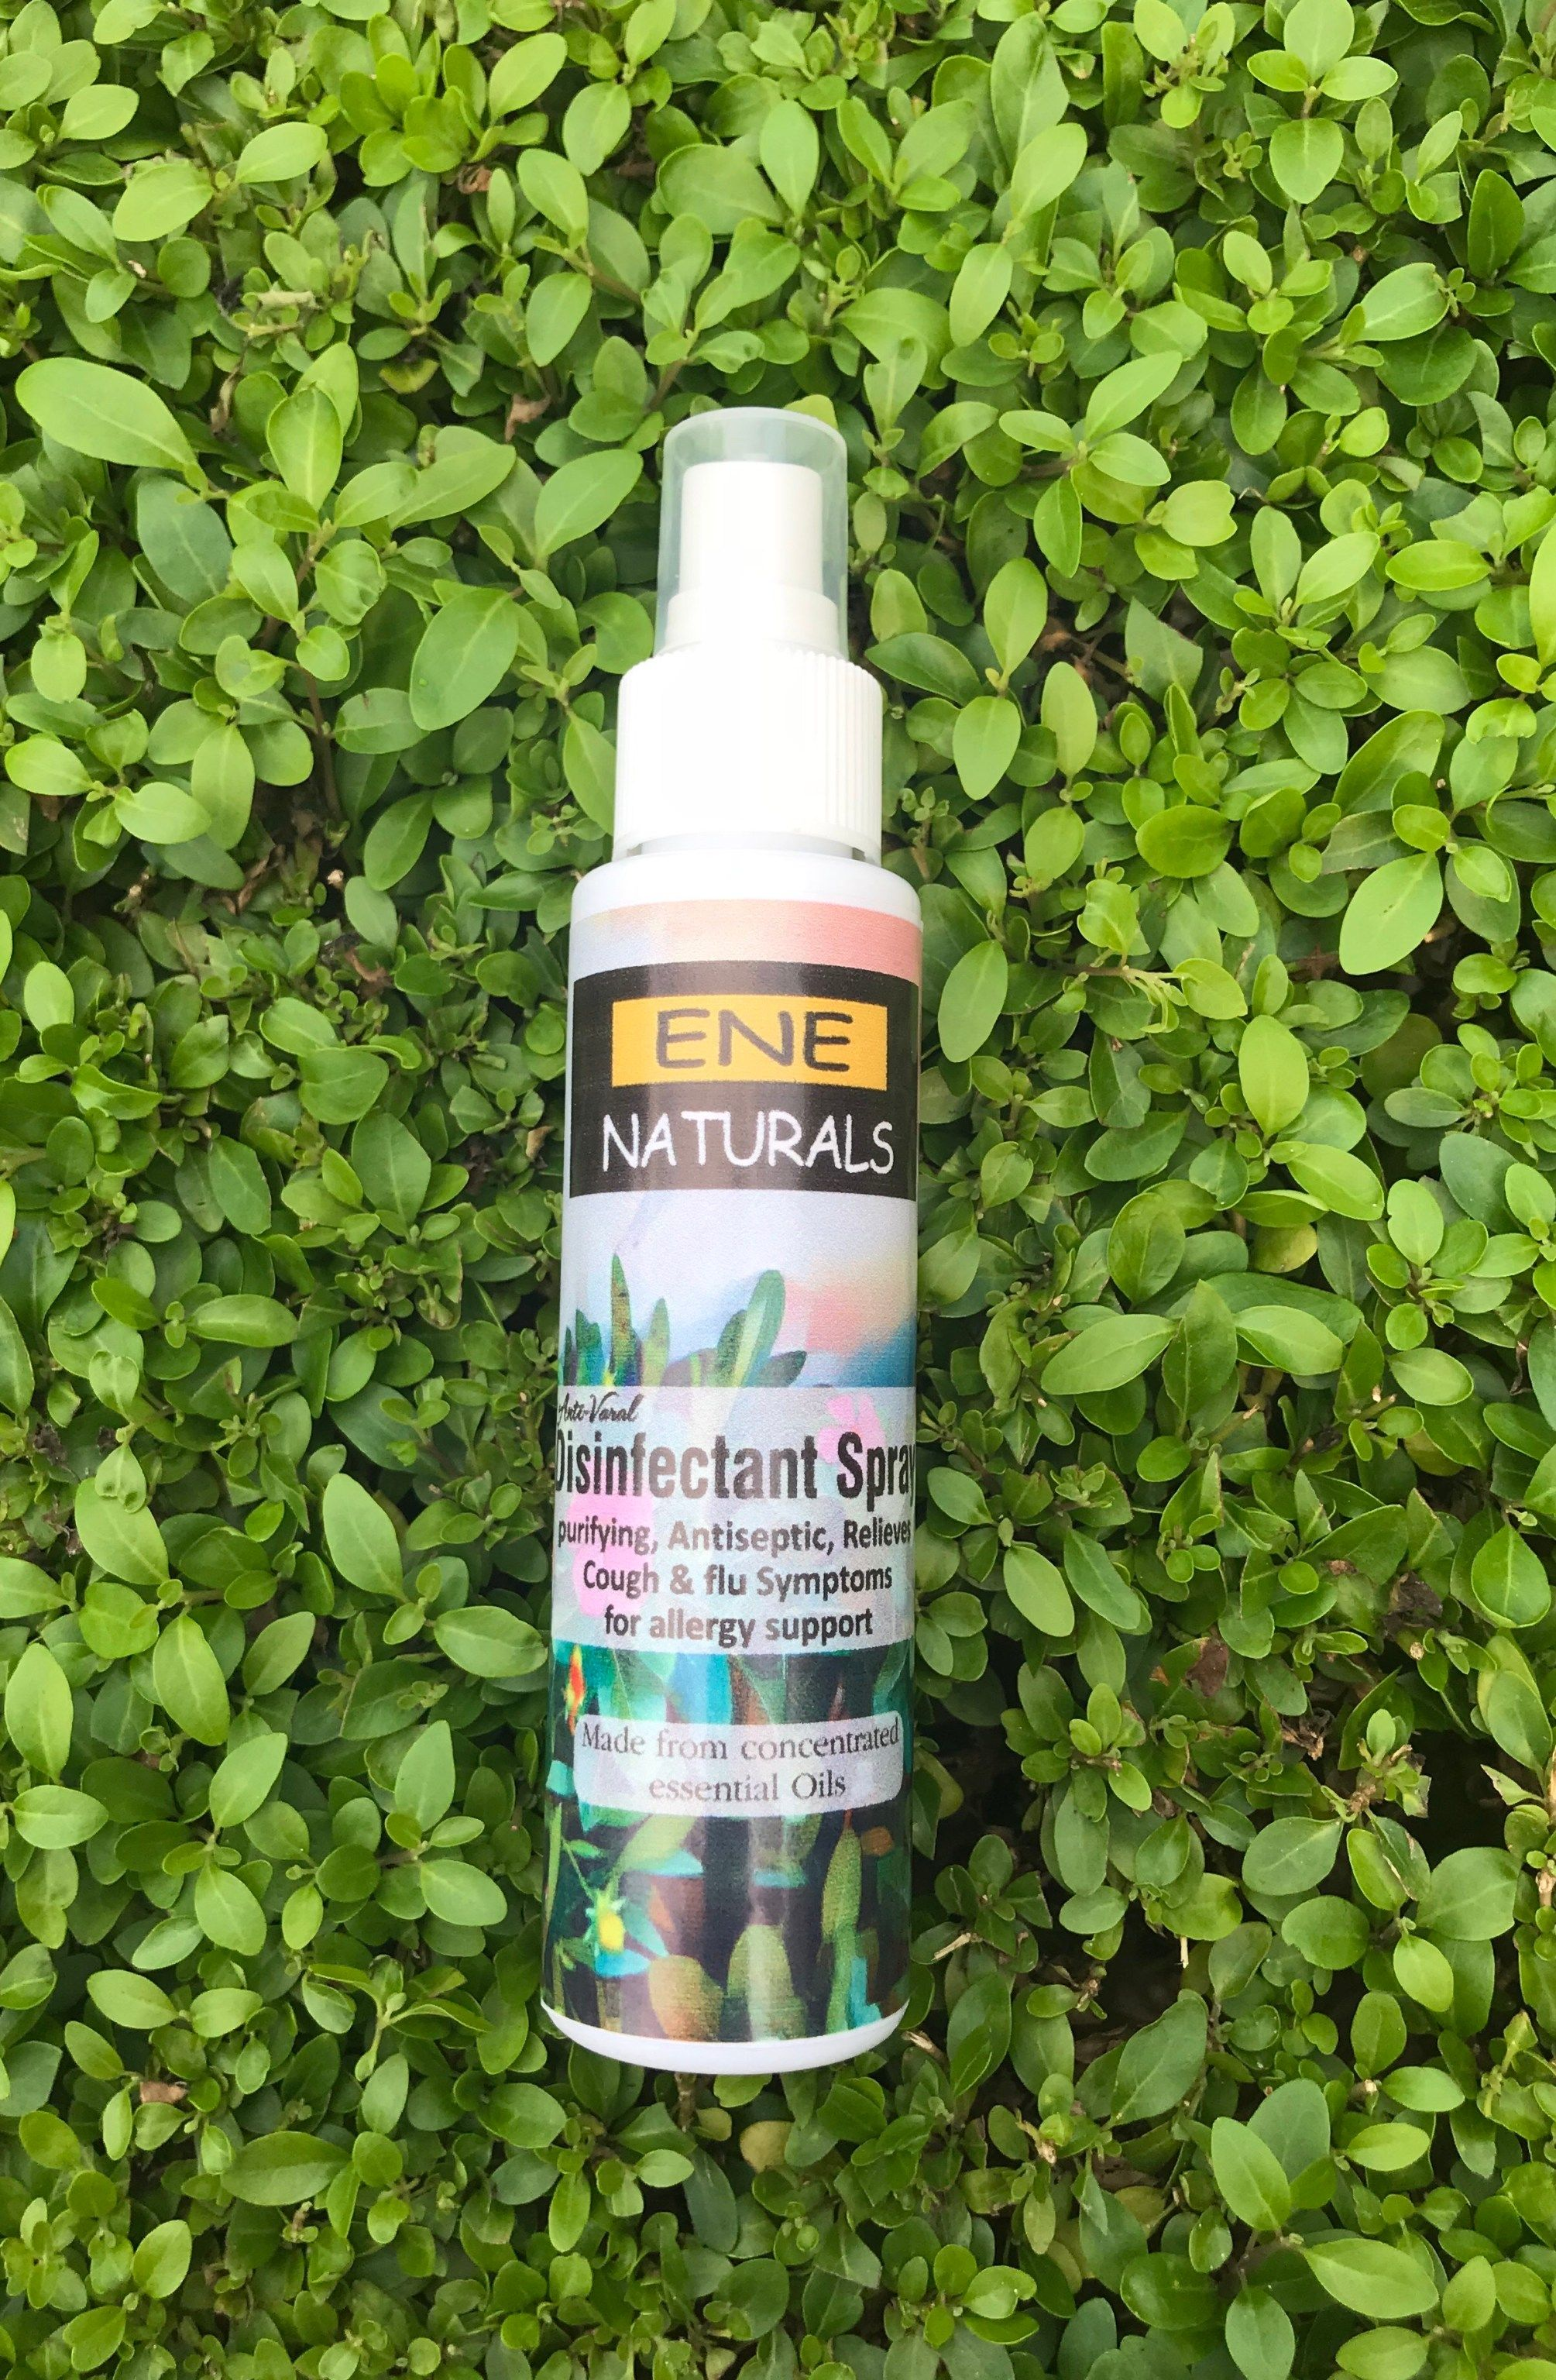 Disinfectant Spray For Allergies Cold Liquid Soap Making Natural Skincare Brands Natural Skin Care